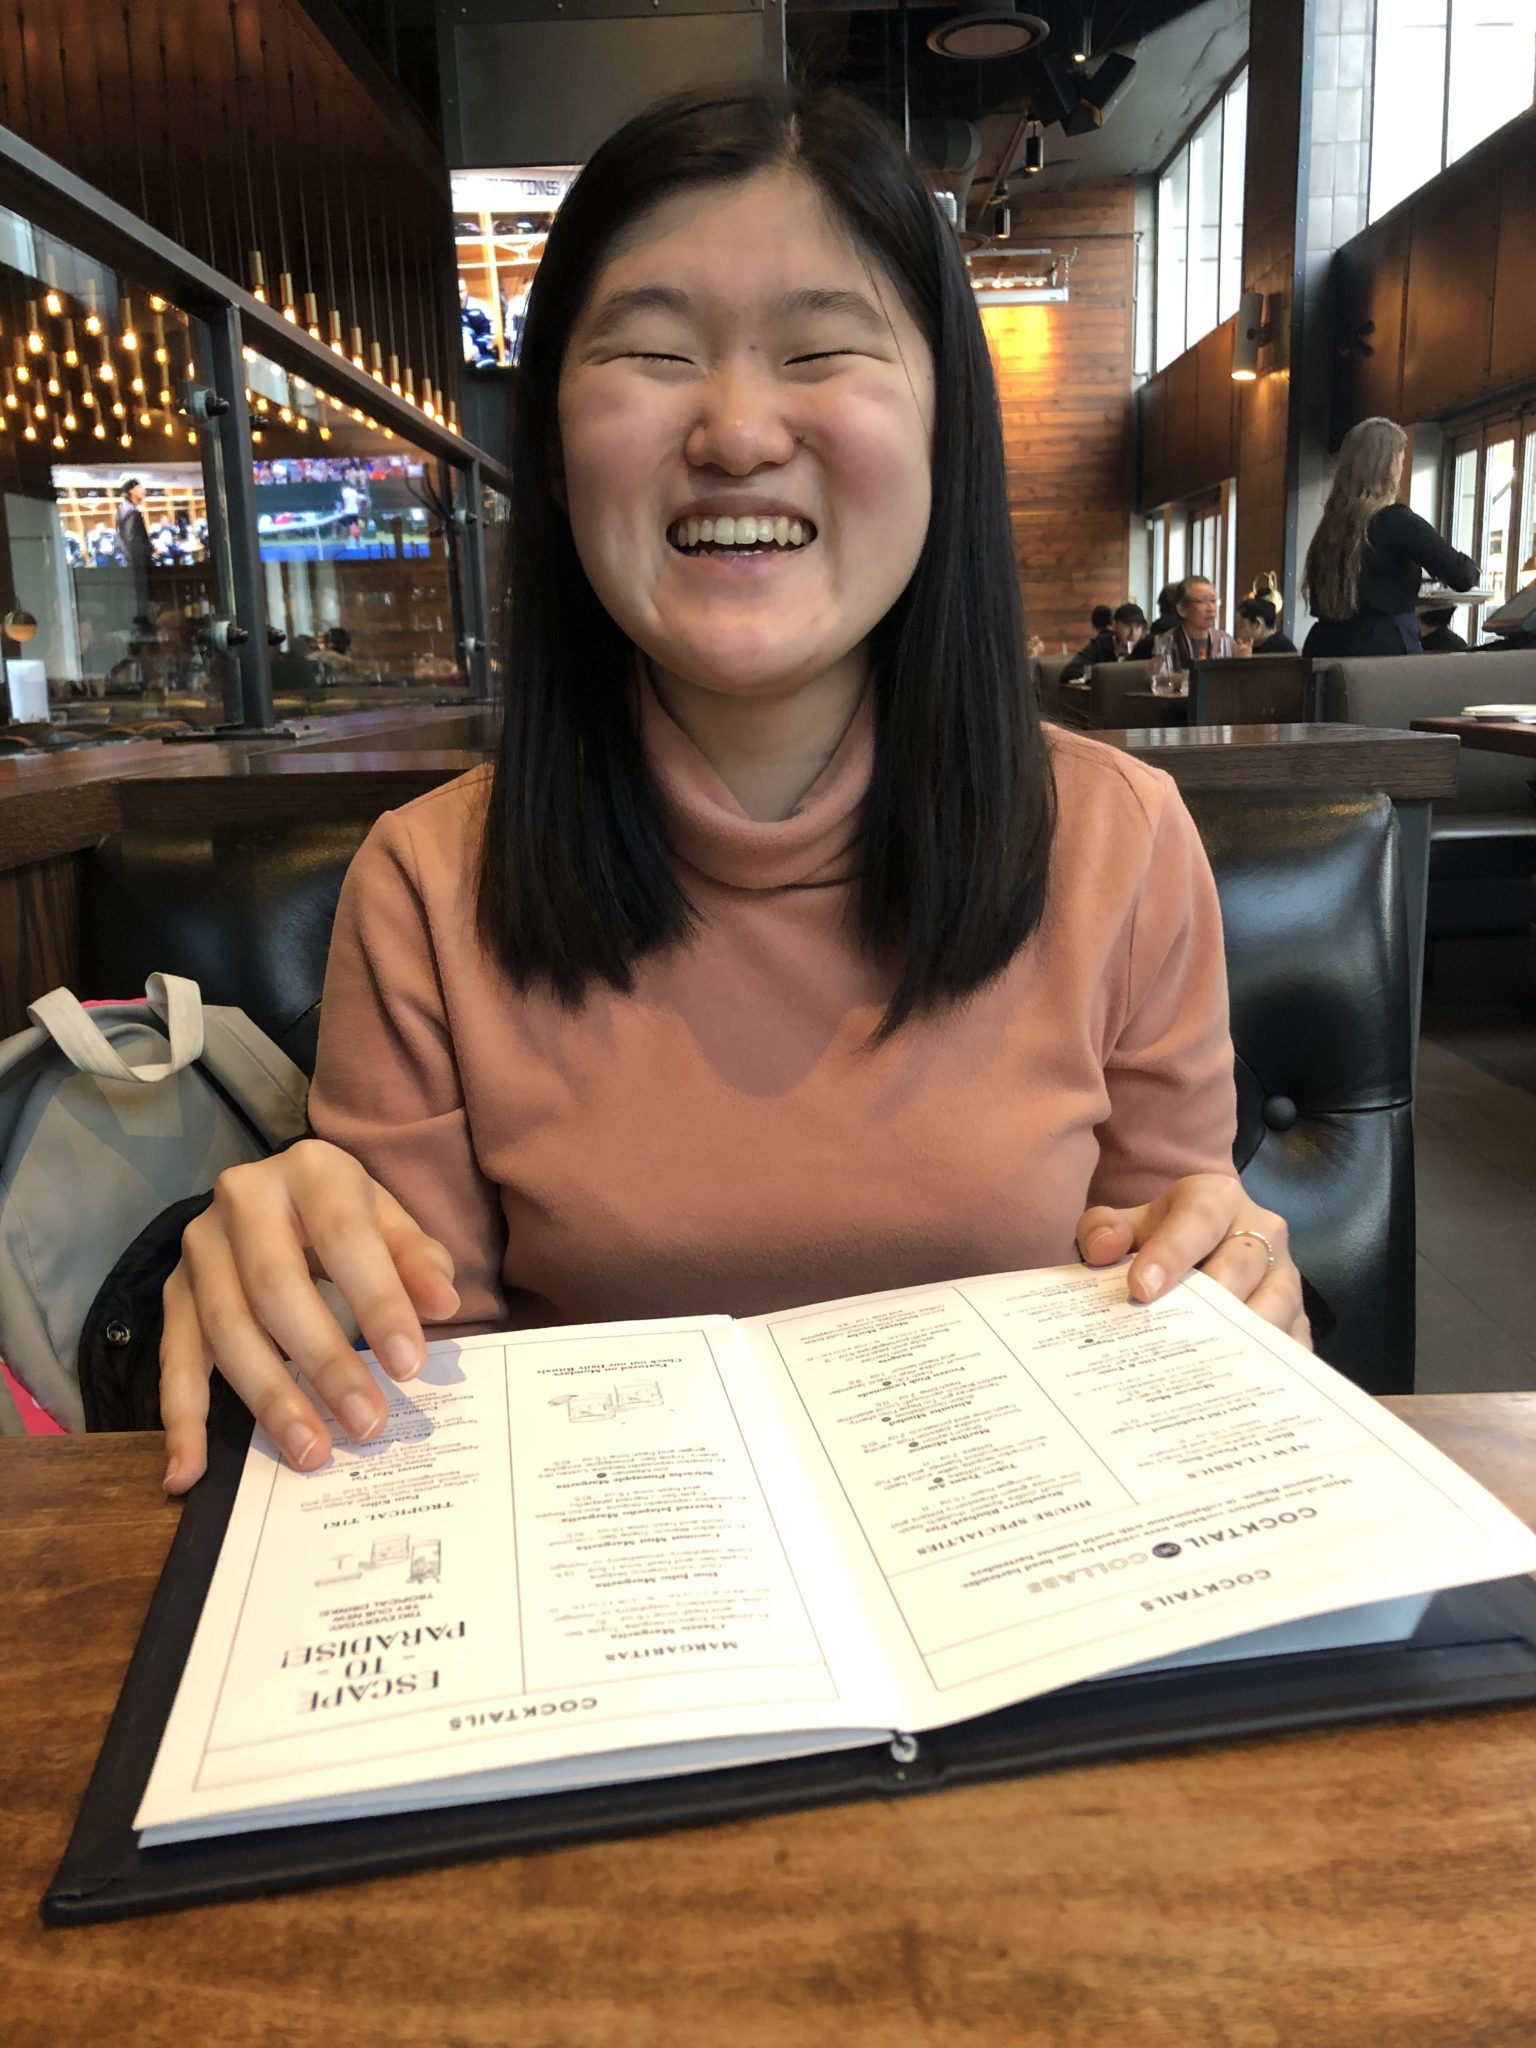 A person smiling widely while holding a menu